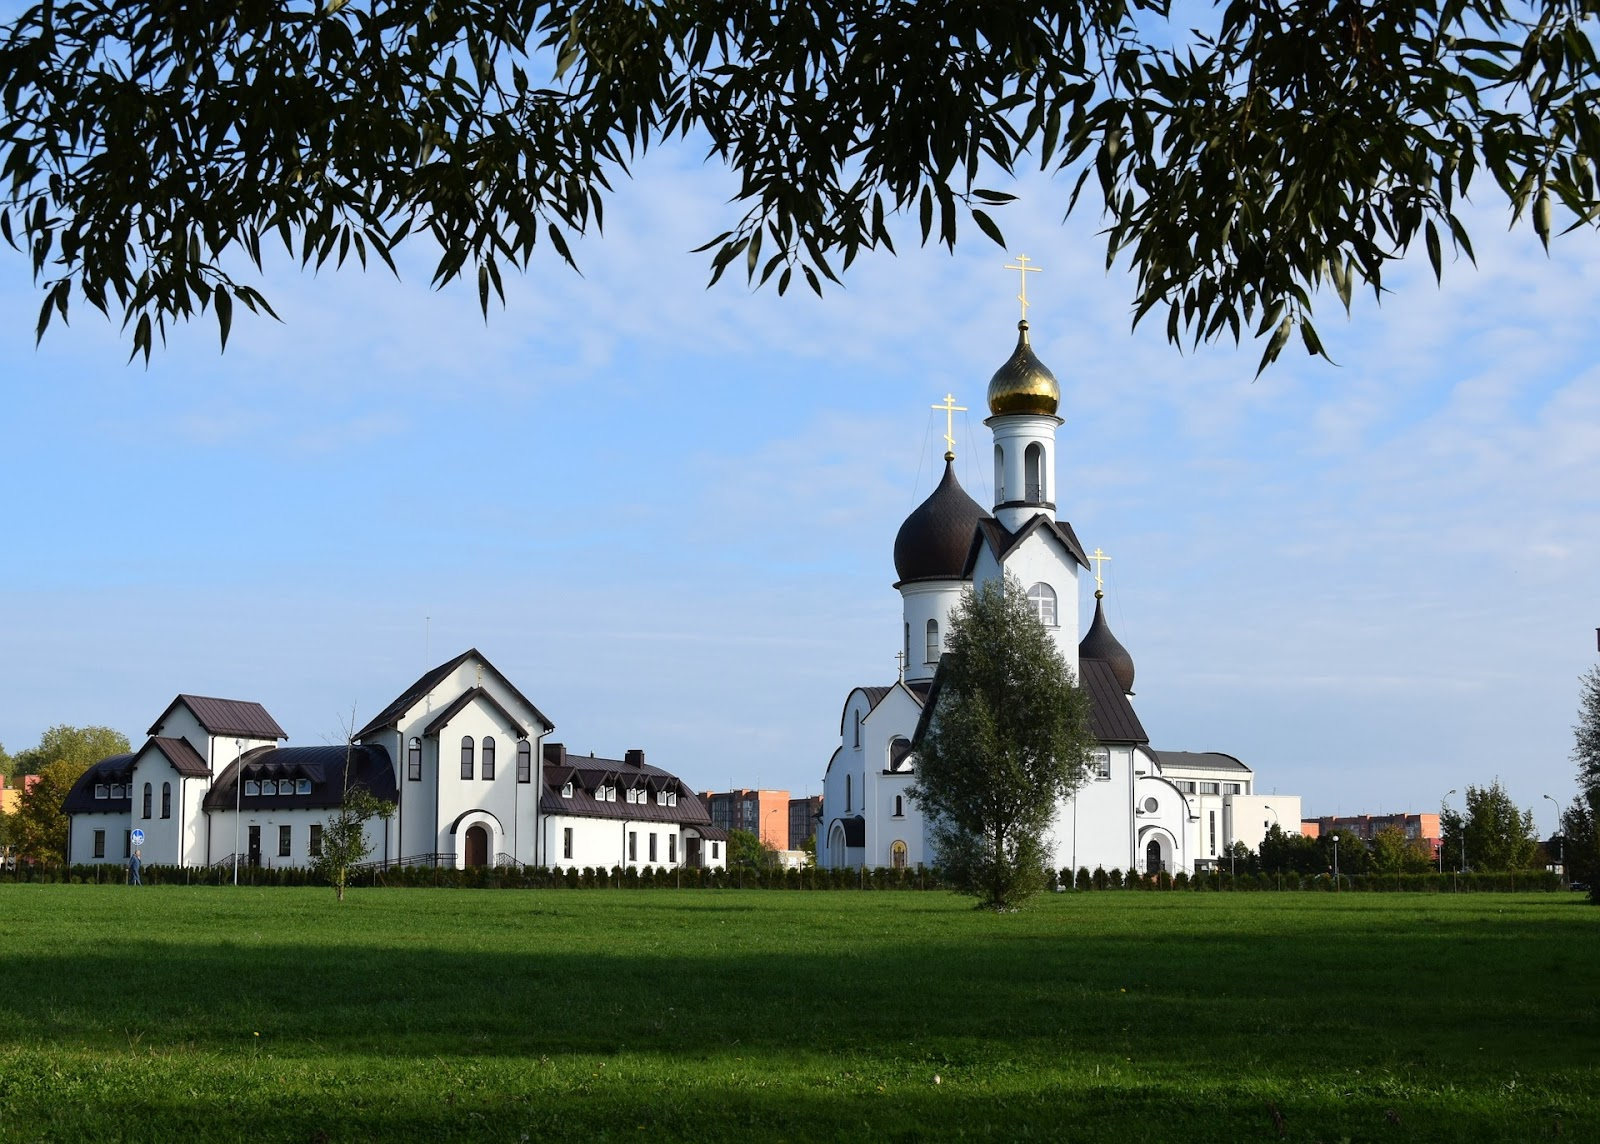 white church in klaipeda, lithuania. beautiful architecture, church is surrounded by green grass and trees lurking into the frame. sunny day.